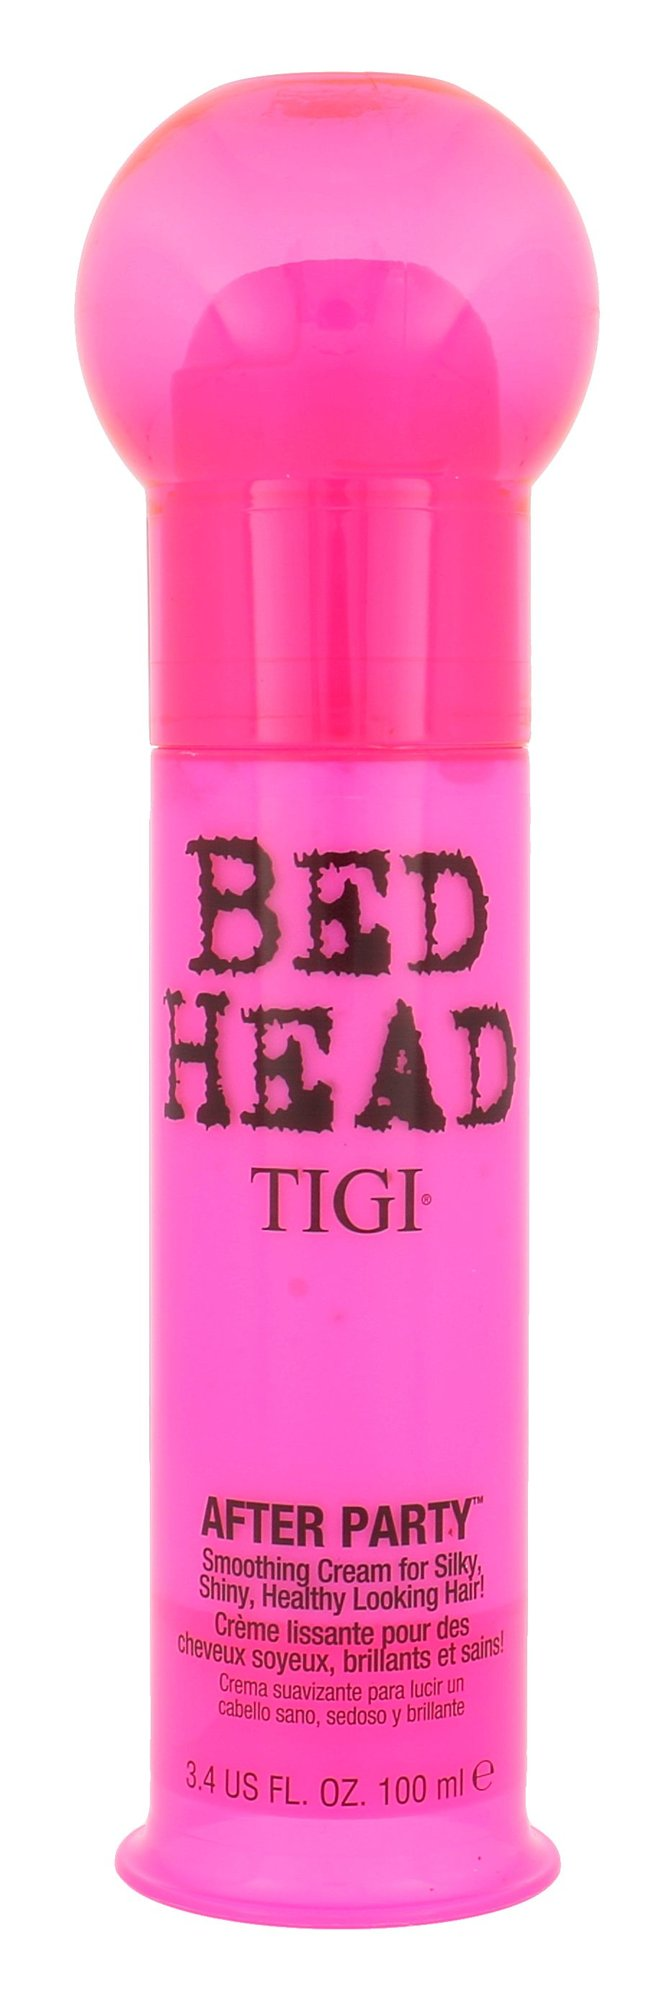 Tigi Bed Head After Party Cosmetic 100ml